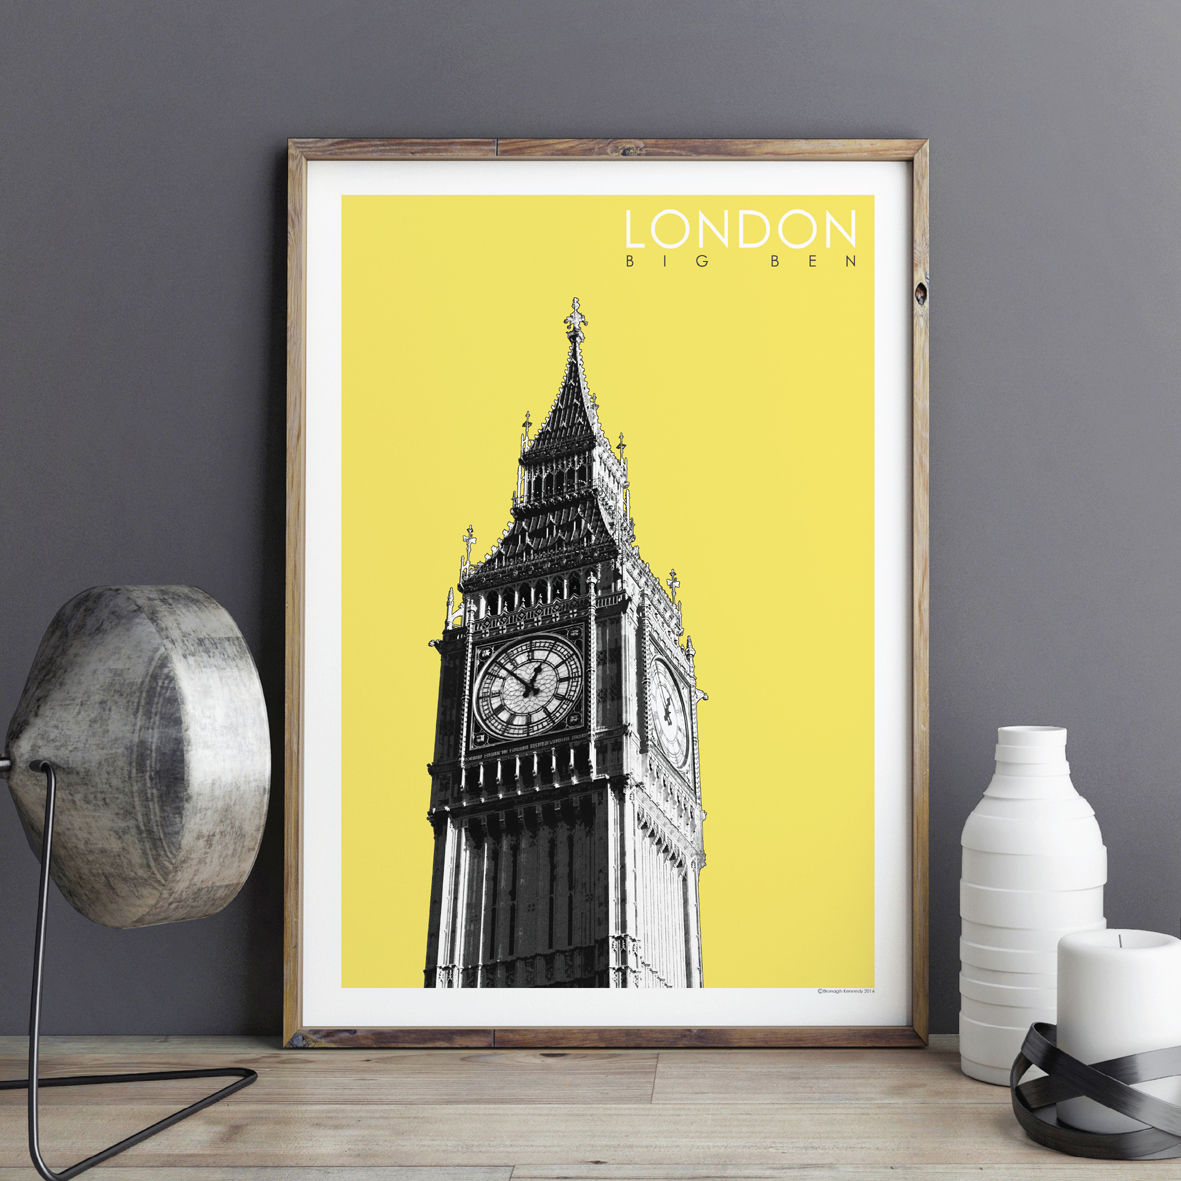 London Art Print - Big Ben - Travel Poster - London Gift - BRONAGH ...